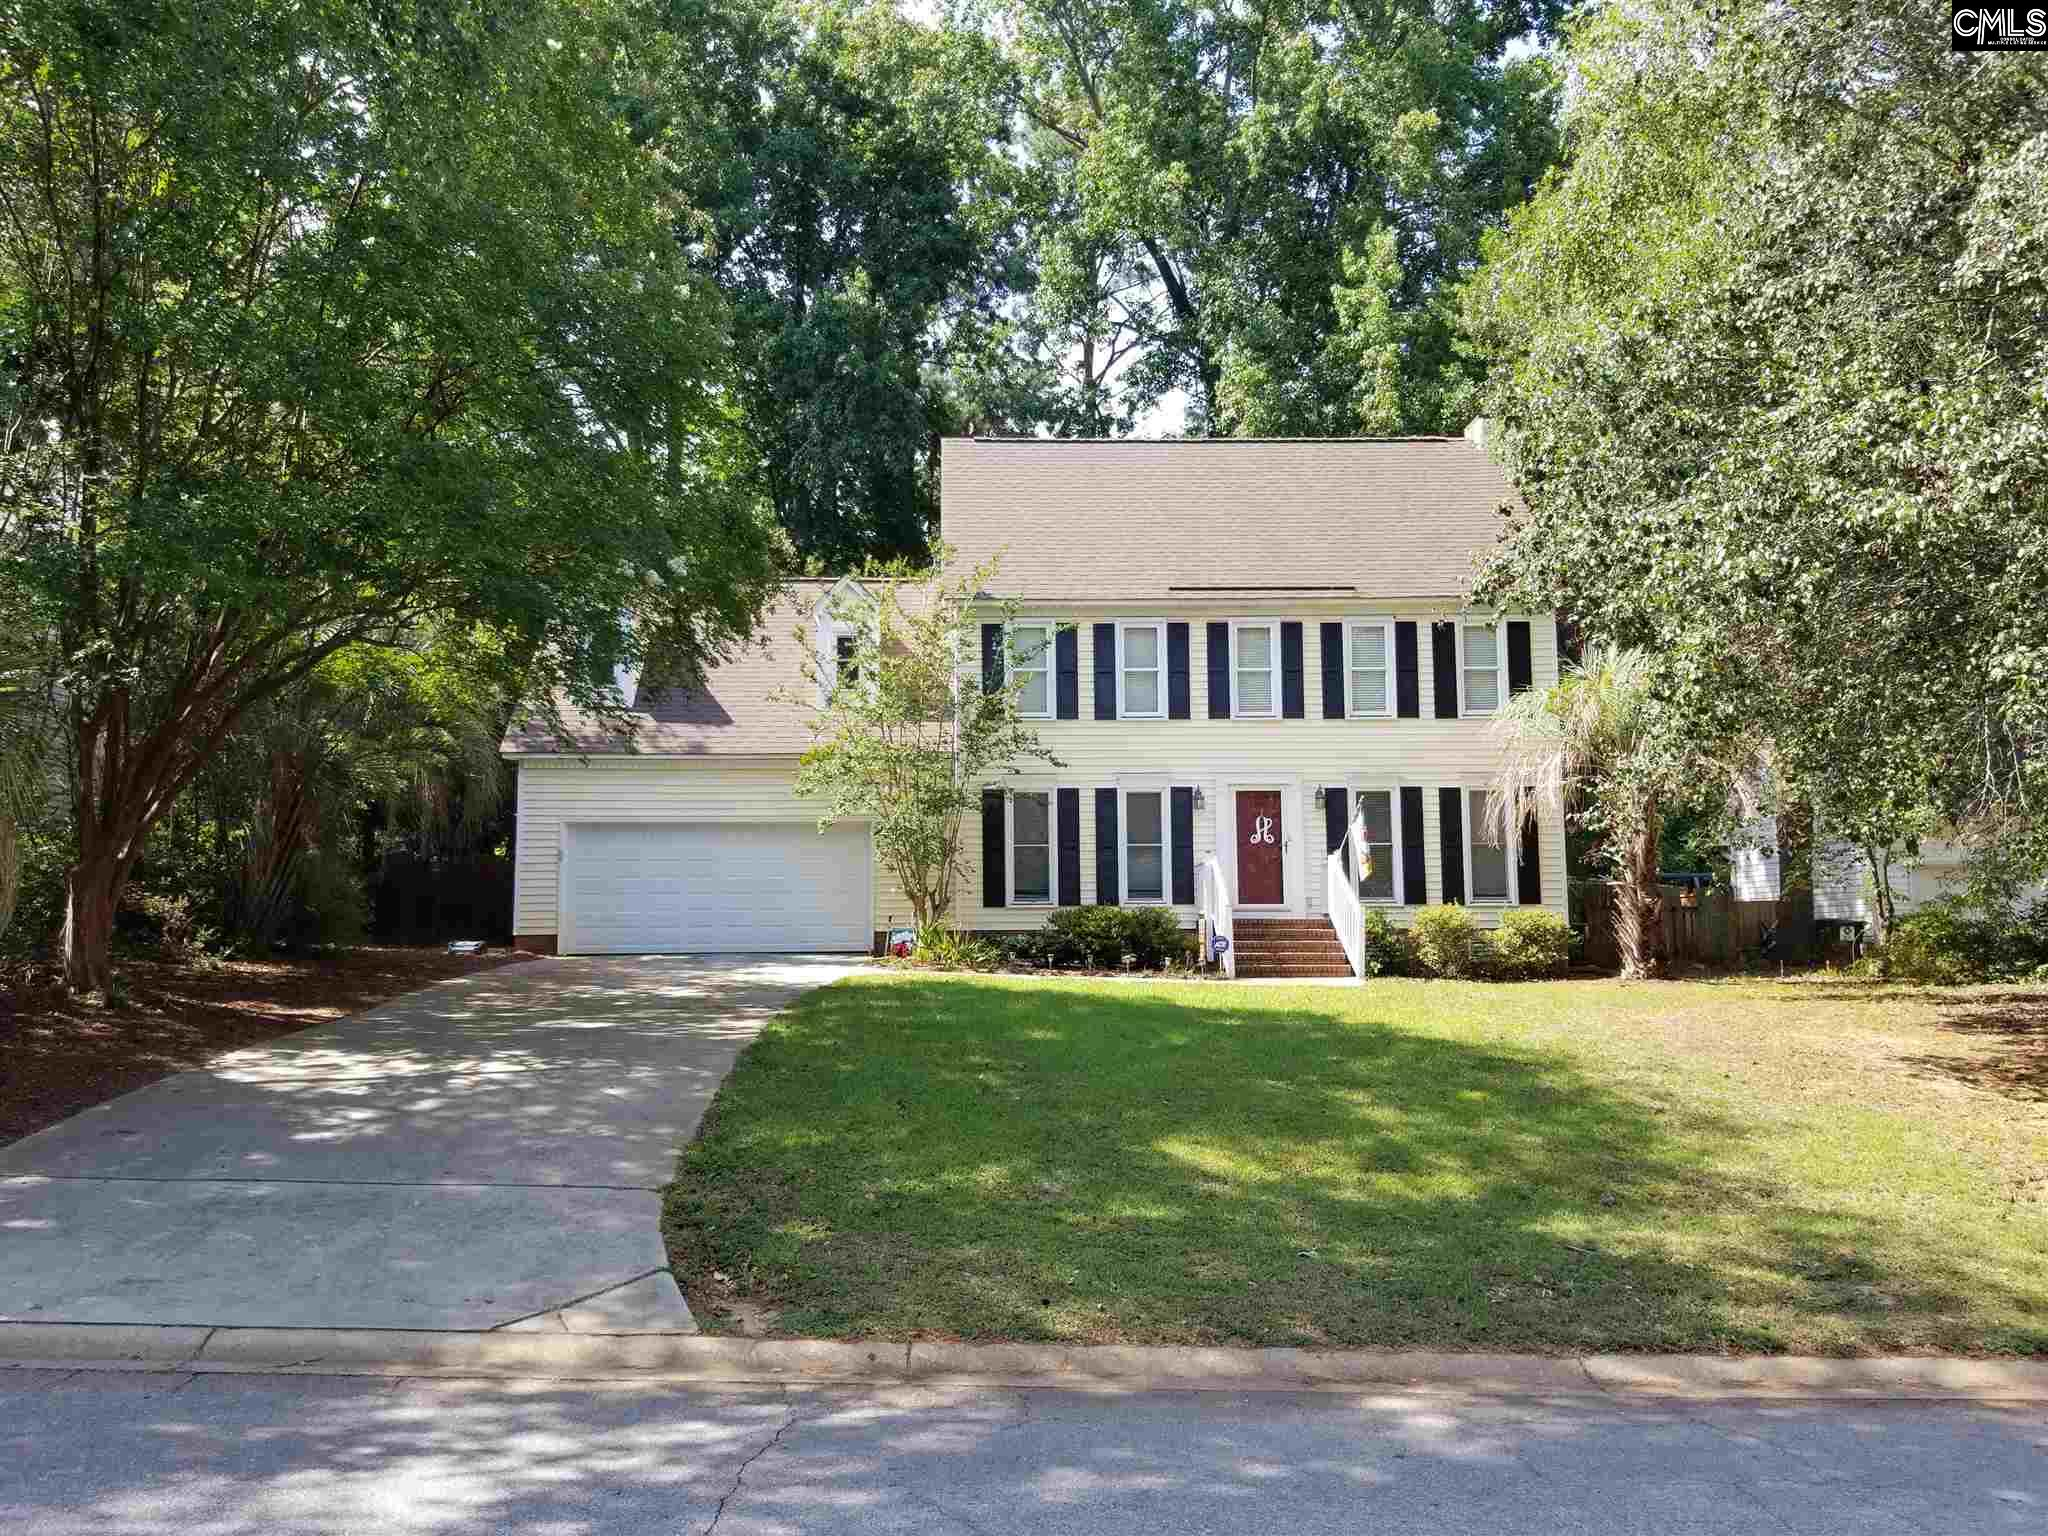 241 Whiteford Way #F/5 Lexington, SC 29072-7974